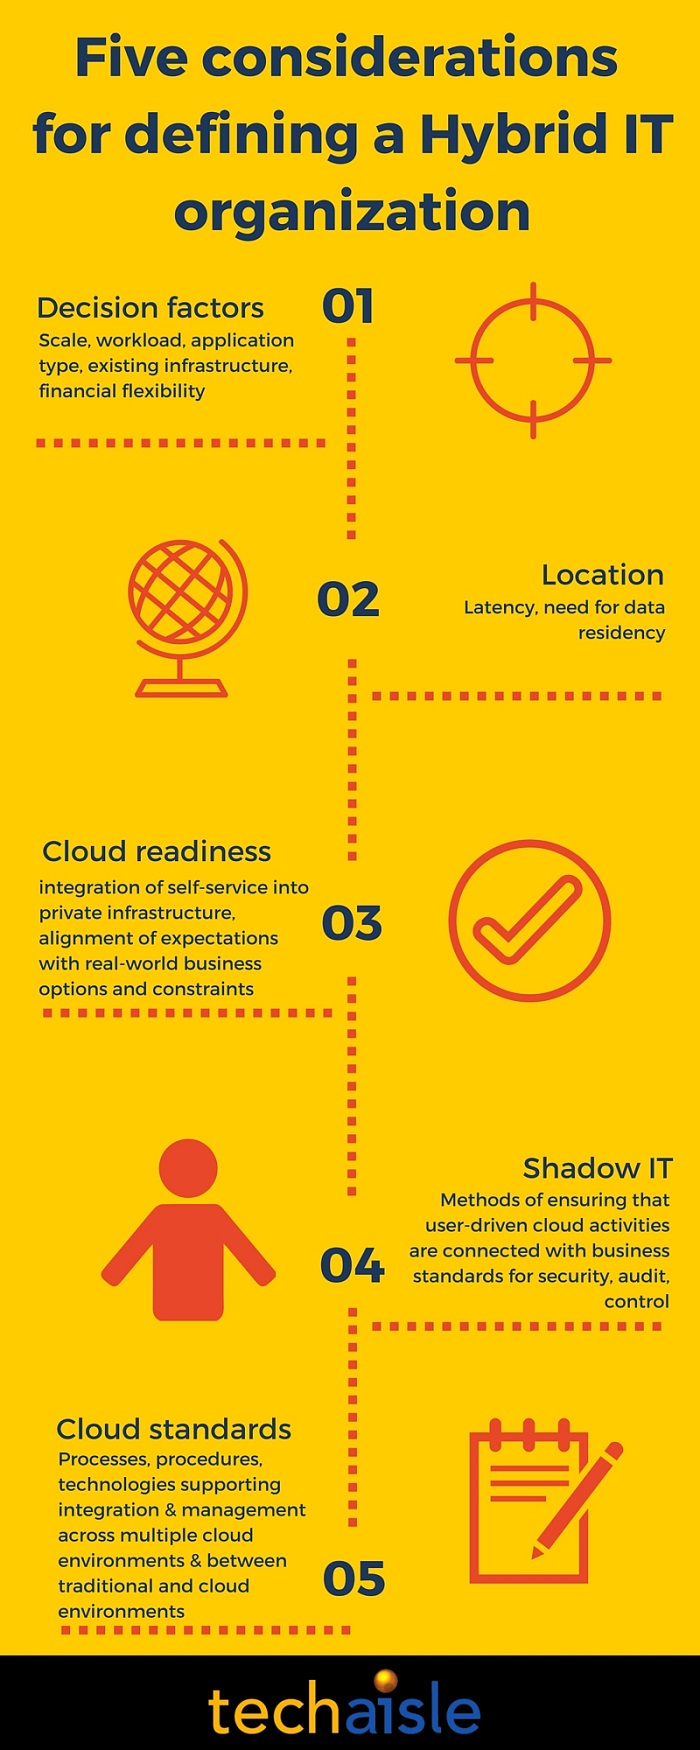 techaisle infographic 5 considerations for hybrid it low res